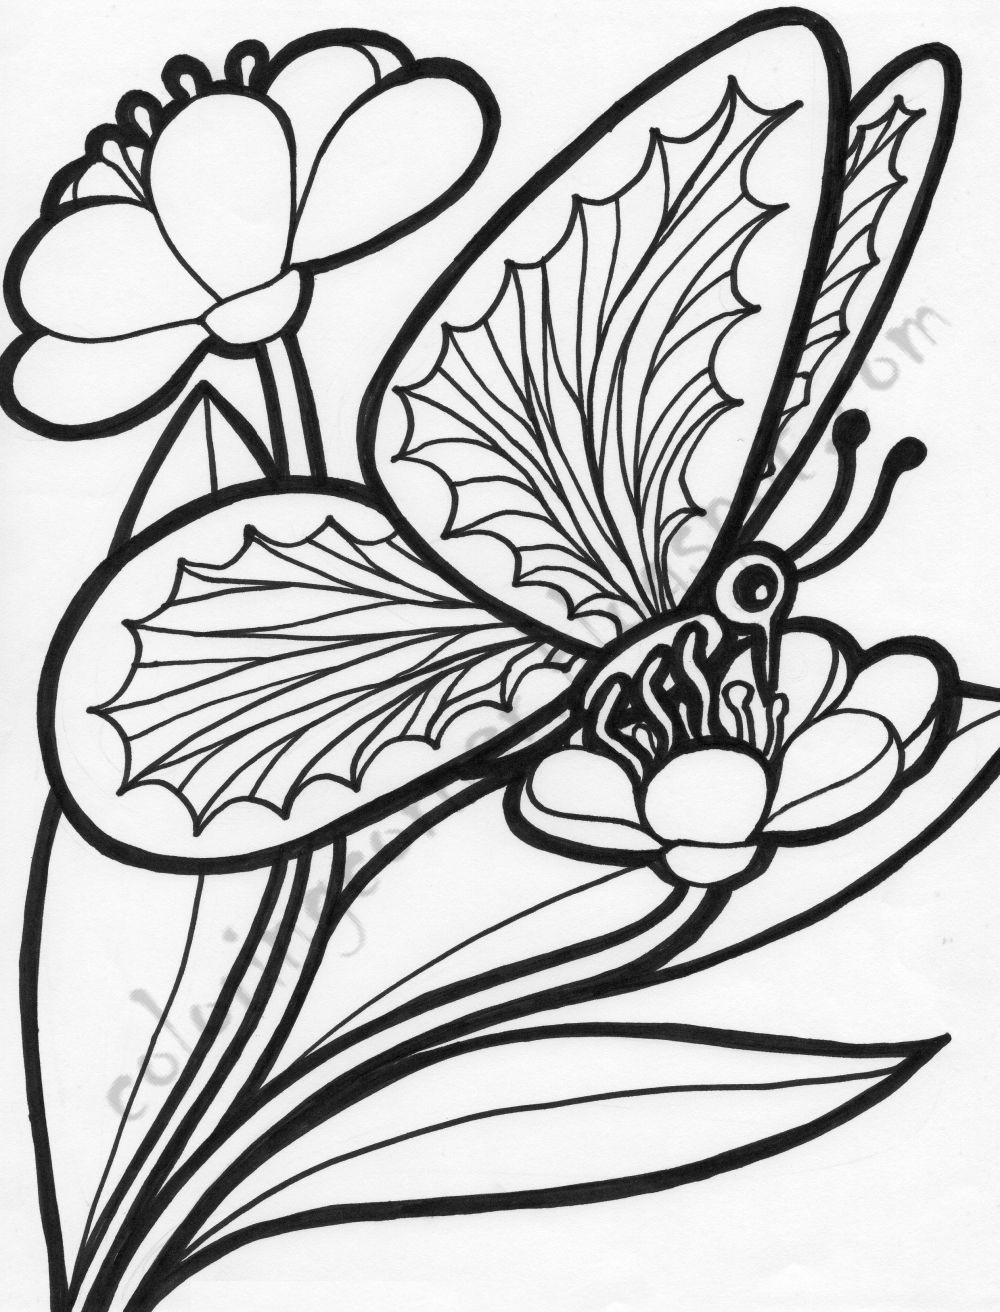 butterflies coloring page coloring pages butterfly free printable coloring pages butterflies coloring page